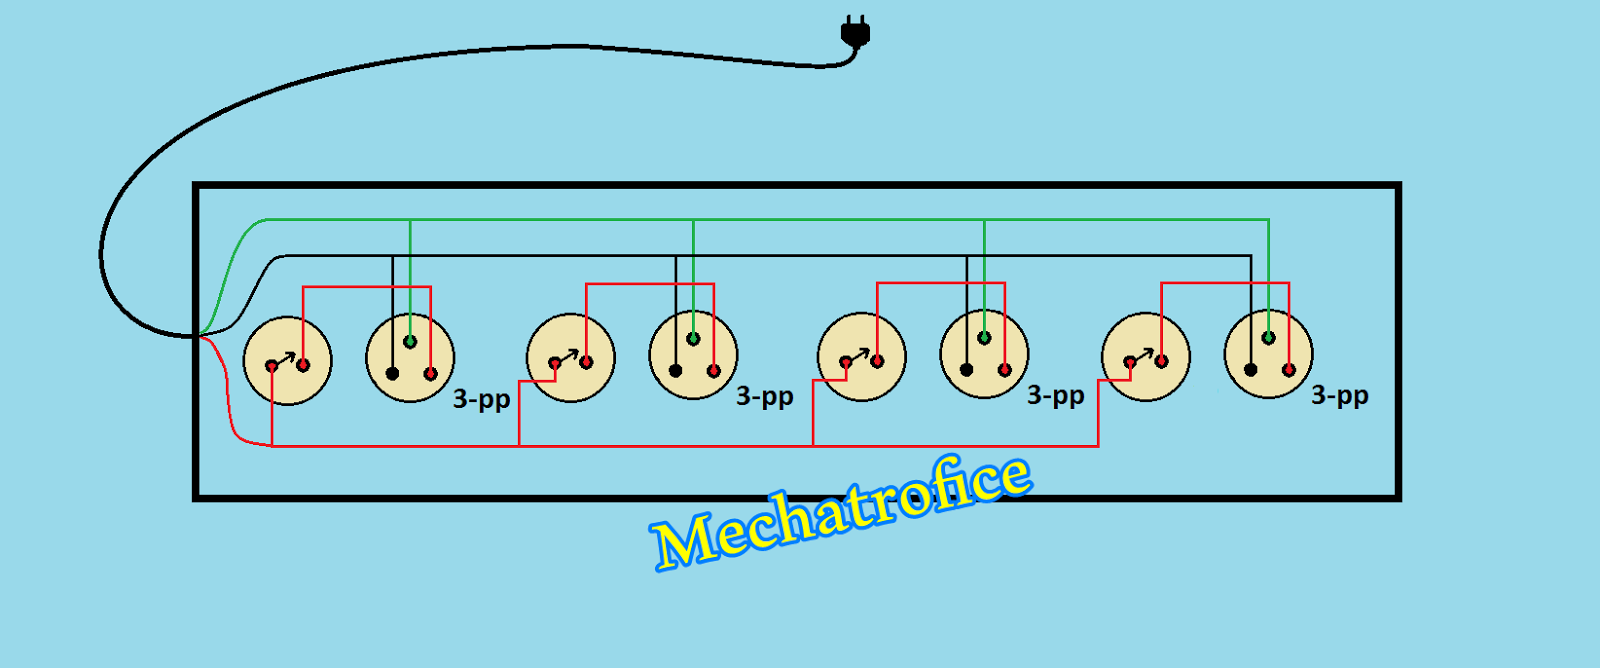 extension cord wiring diagram  mechatrofice, wiring diagram